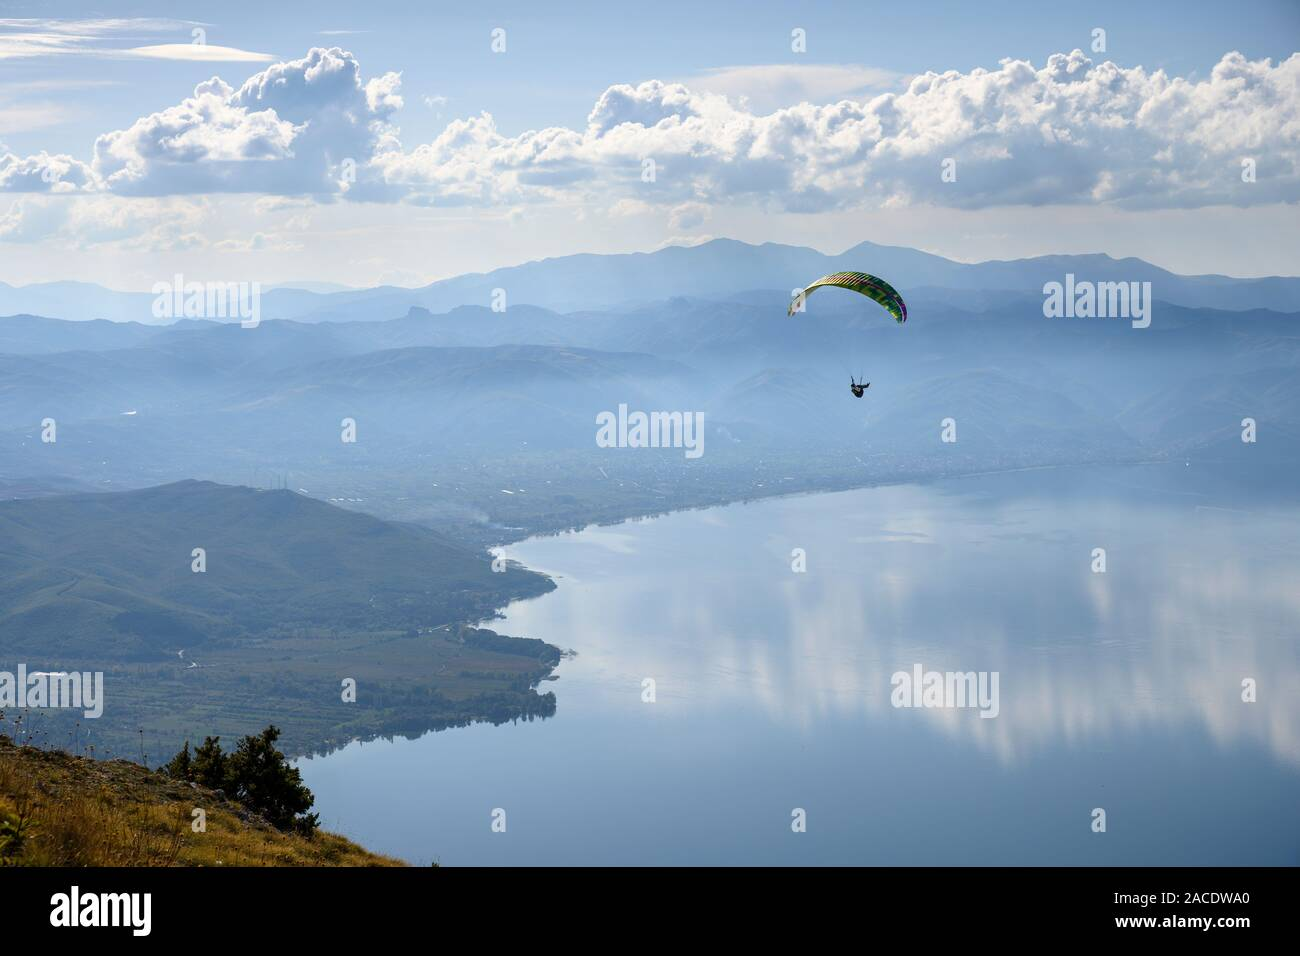 Paragliders in the Galičica National Park above Lake Ohrid in North Macedonia, with Albania in the distance, North Macedonia,  Europe. Stock Photo